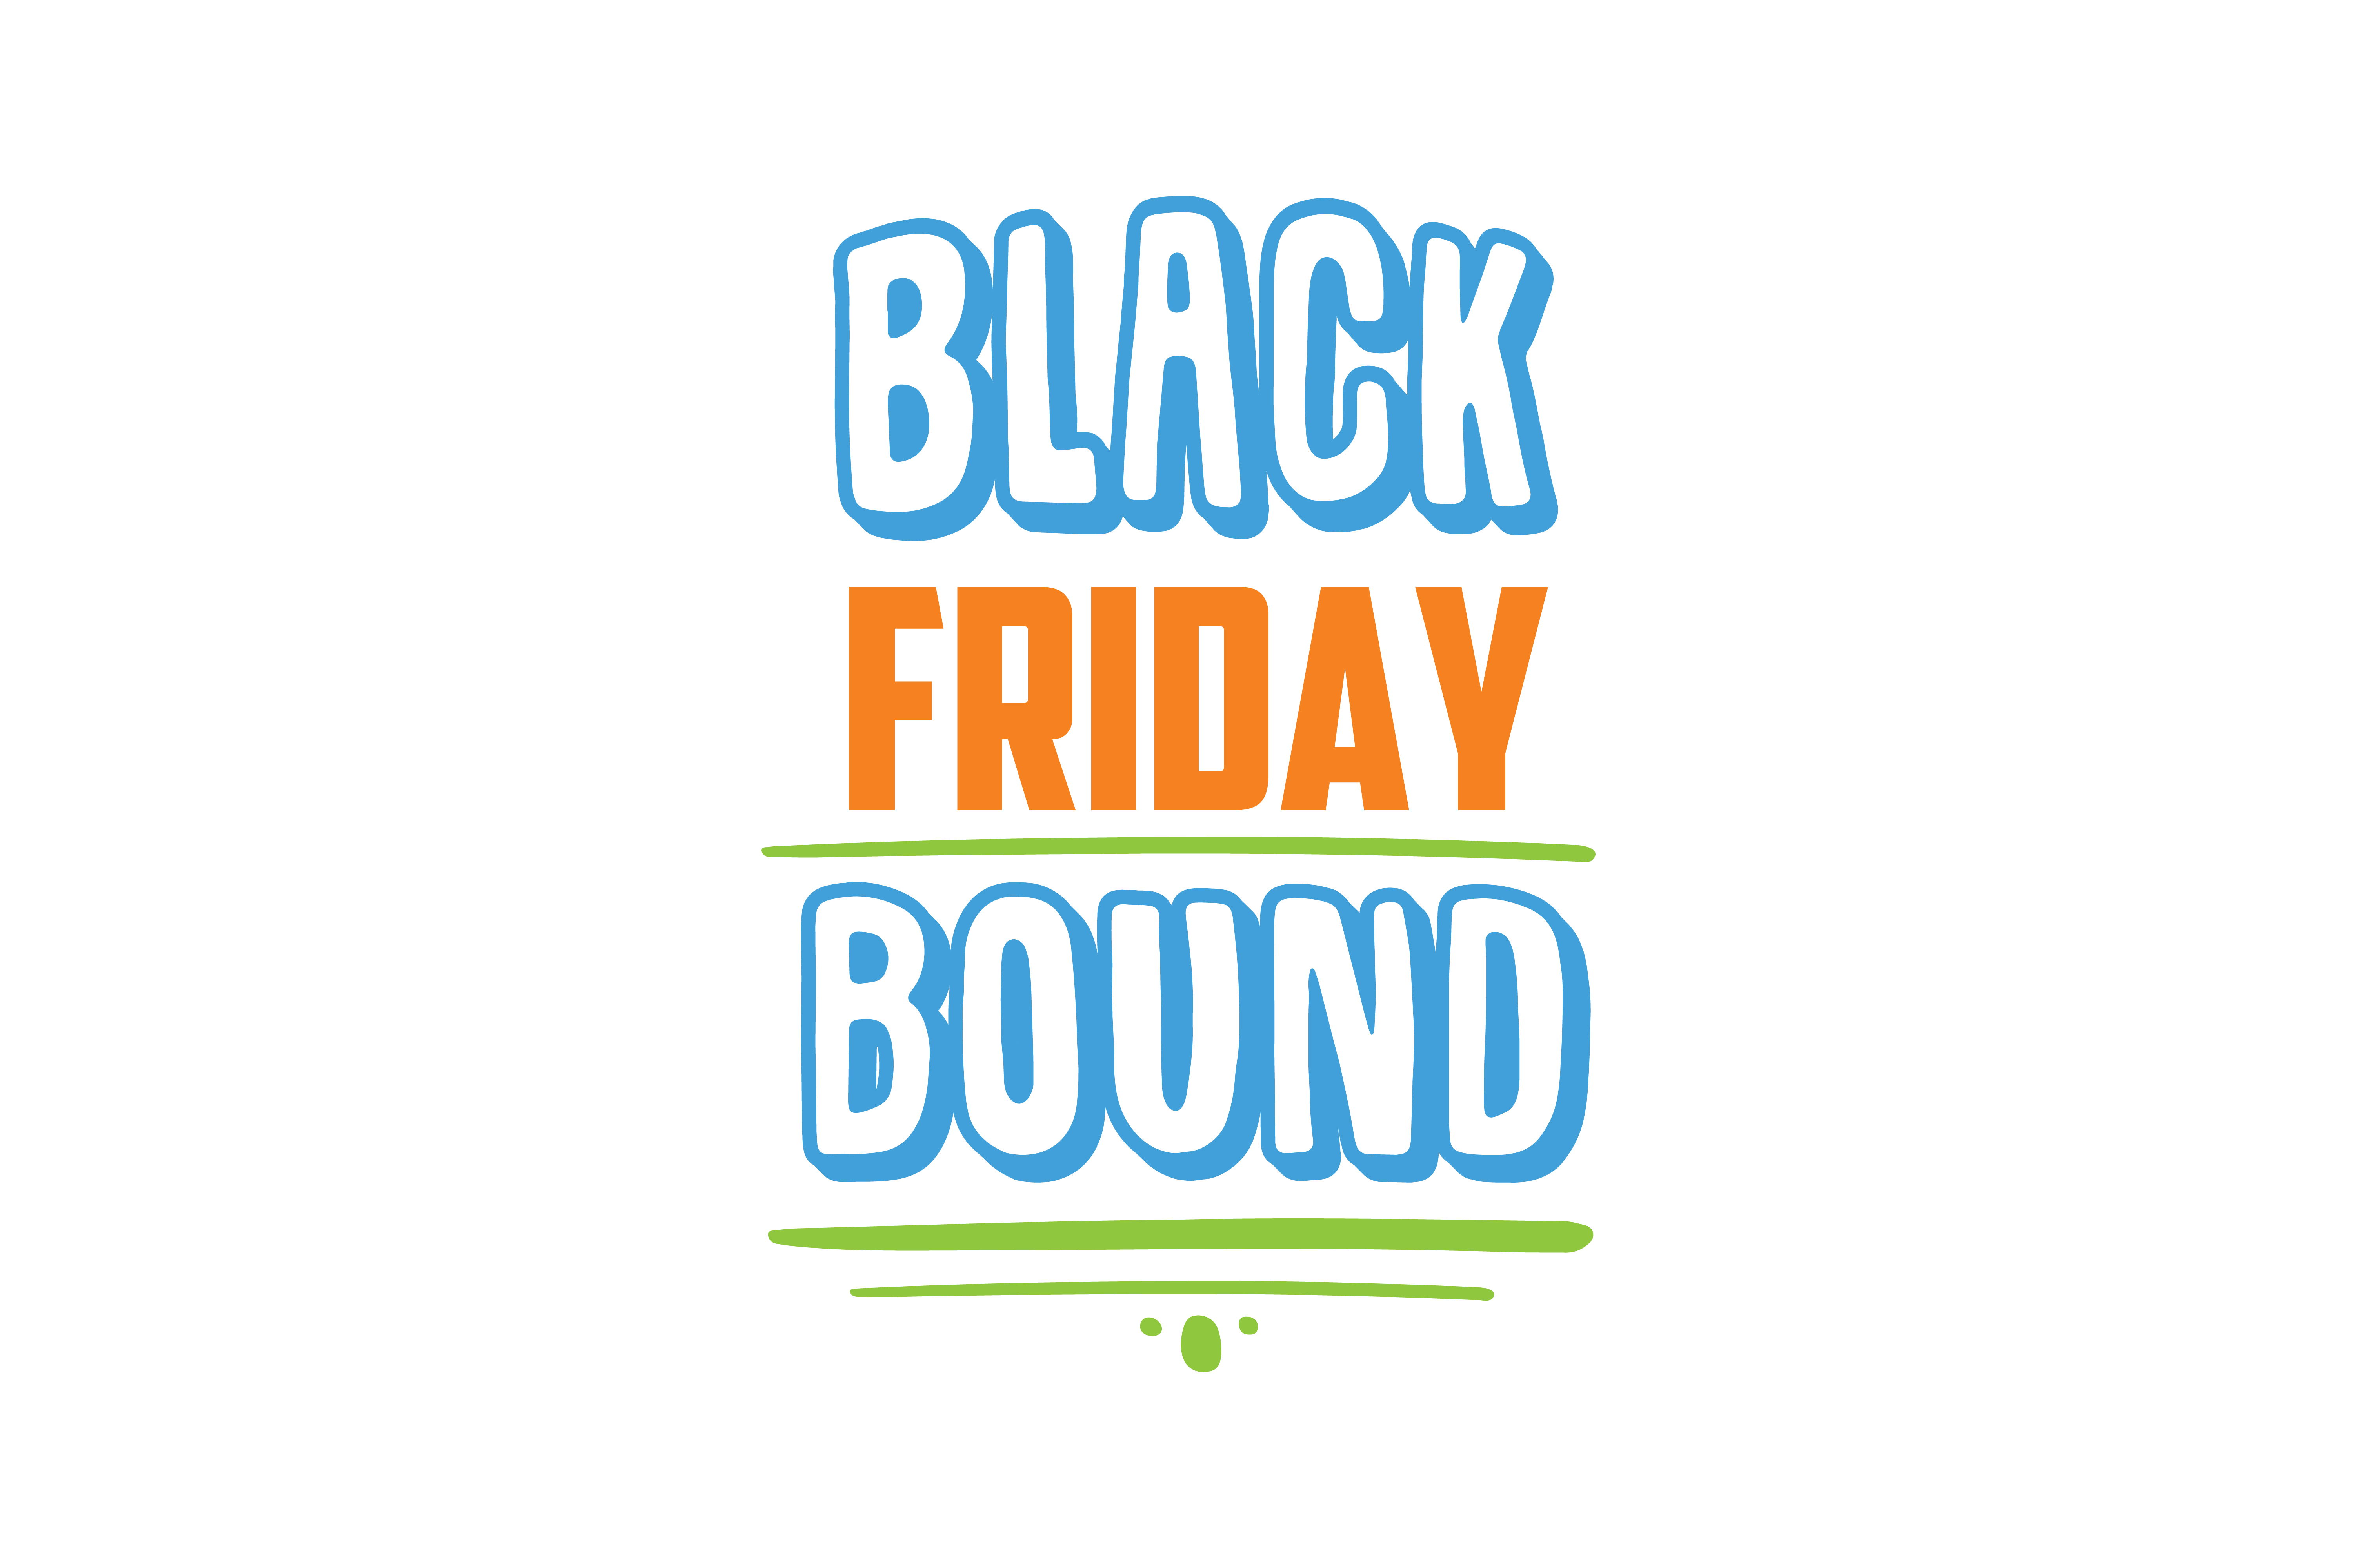 Download Free Black Friday Bound Quote Svg Cut Graphic By Thelucky Creative for Cricut Explore, Silhouette and other cutting machines.